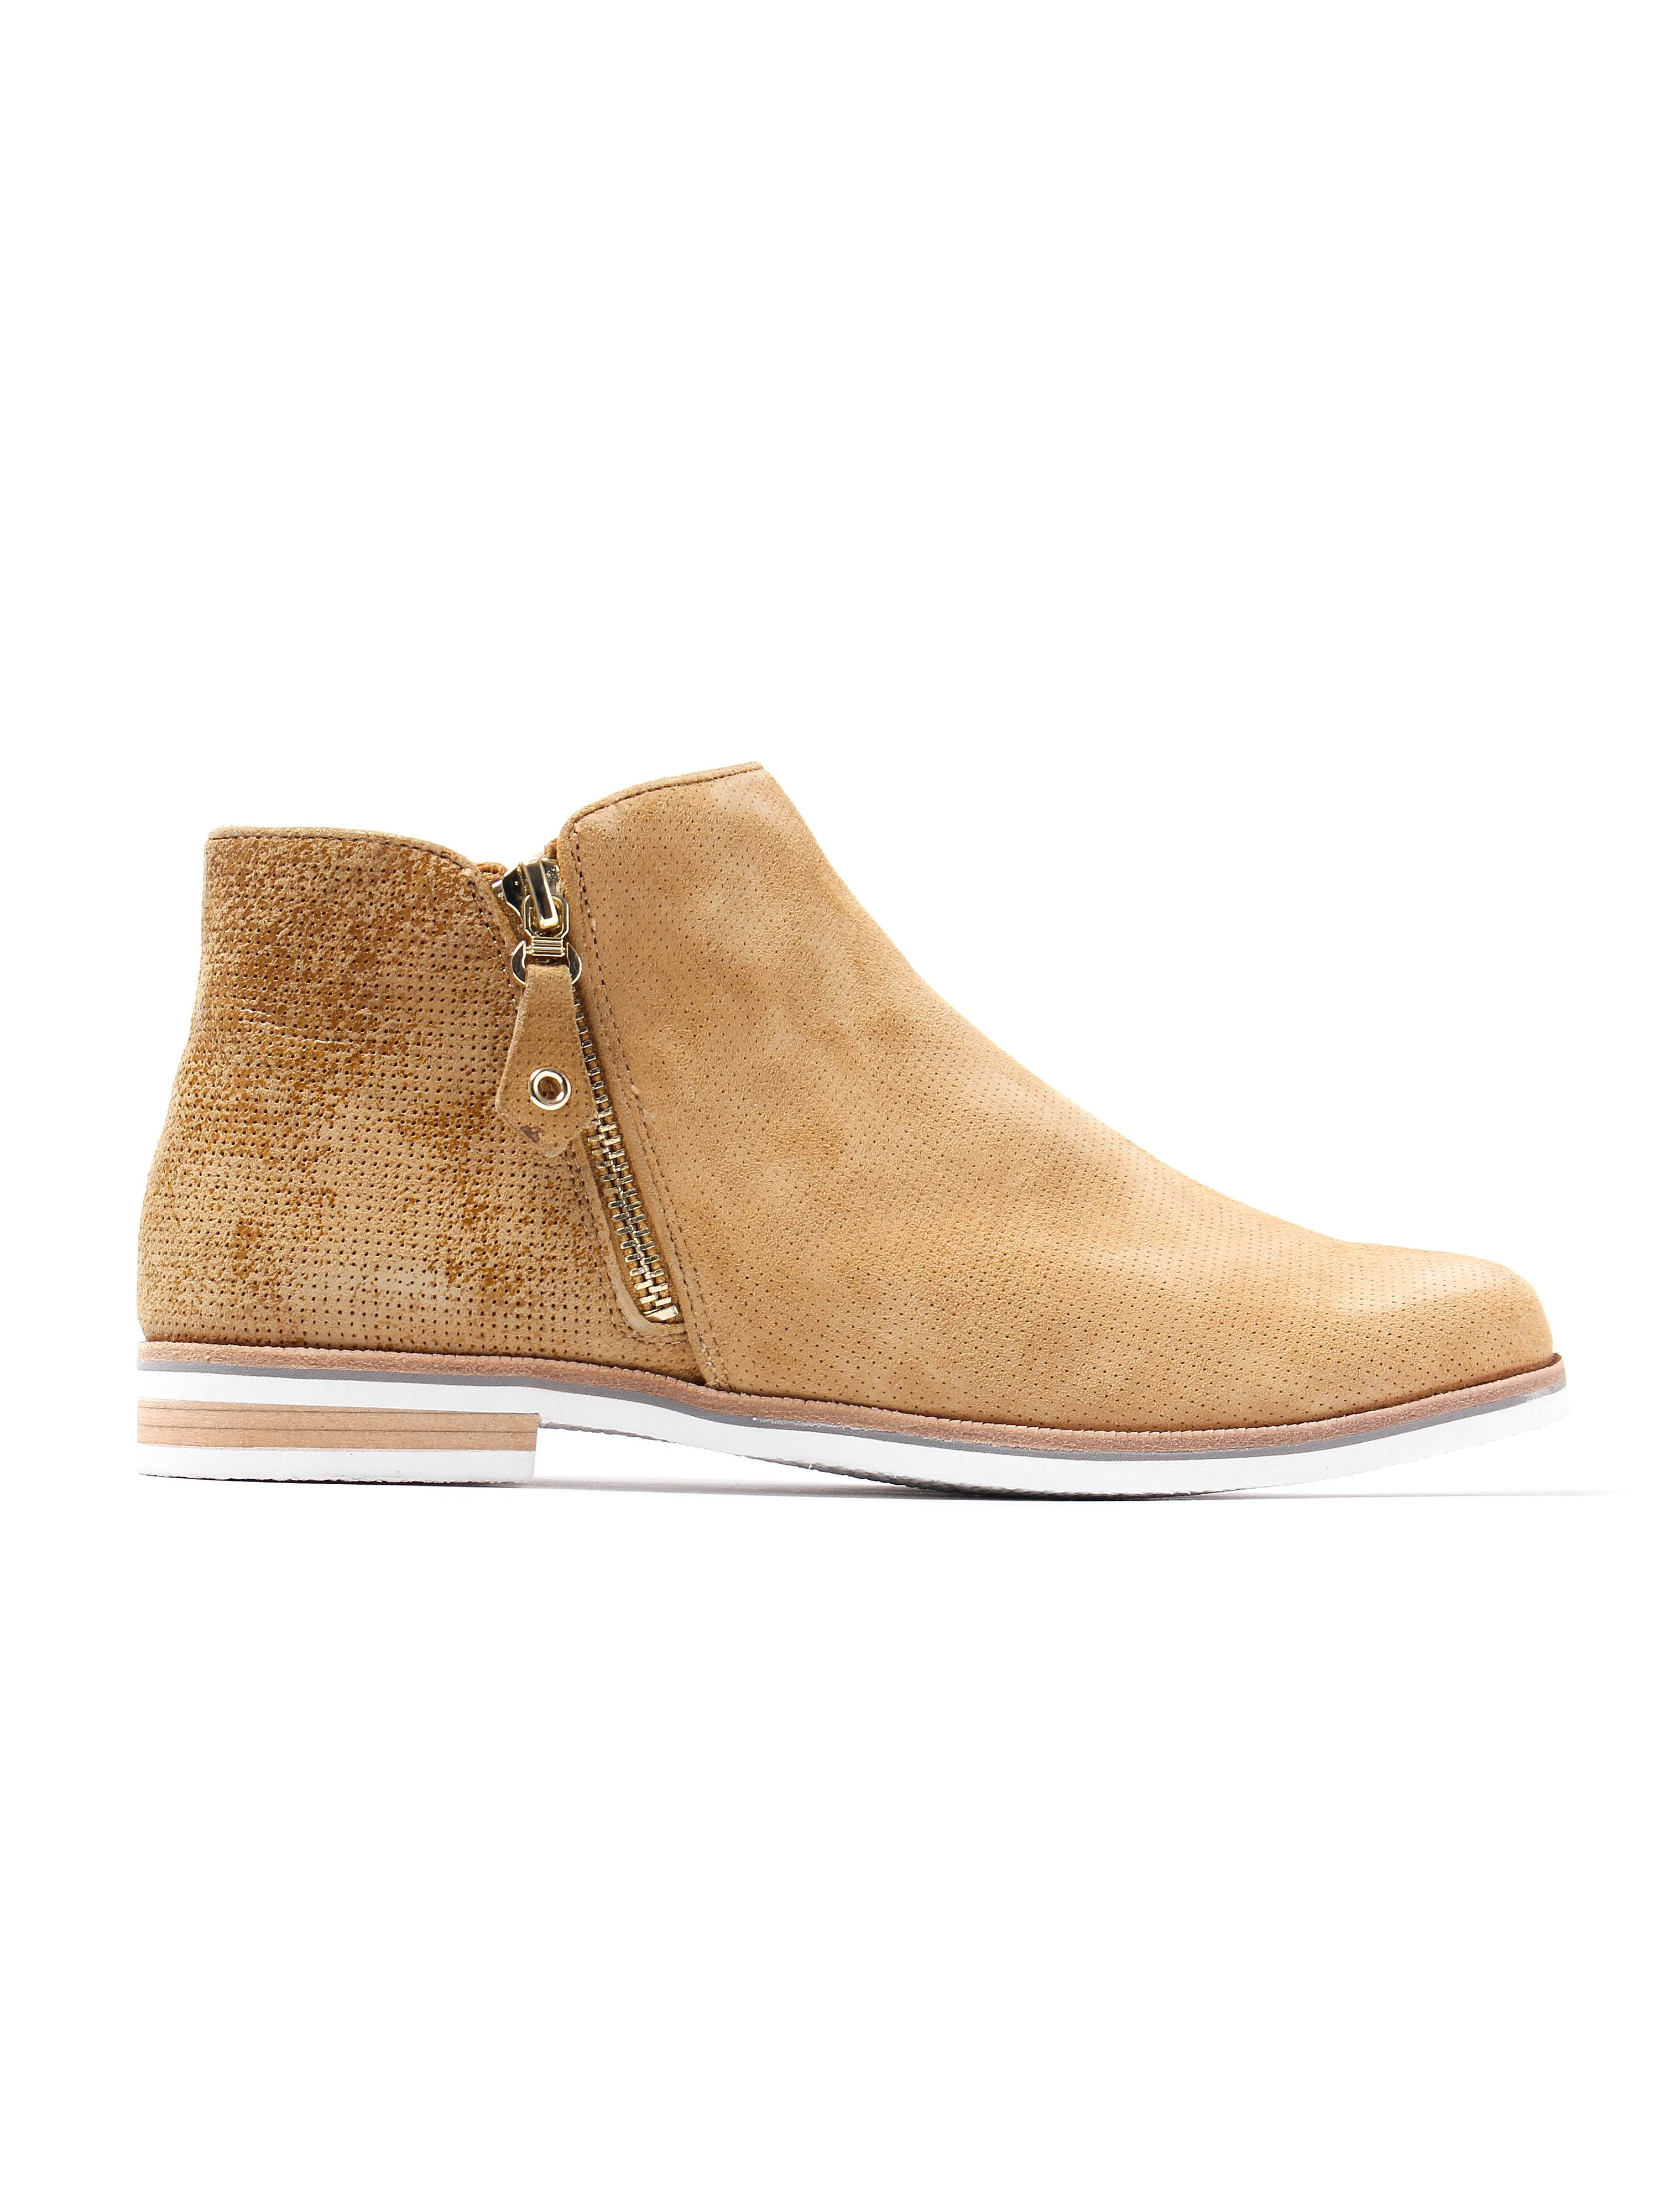 Caprice Women's Perforated Suede Size Zip Ankle Boots - Saffron Comb